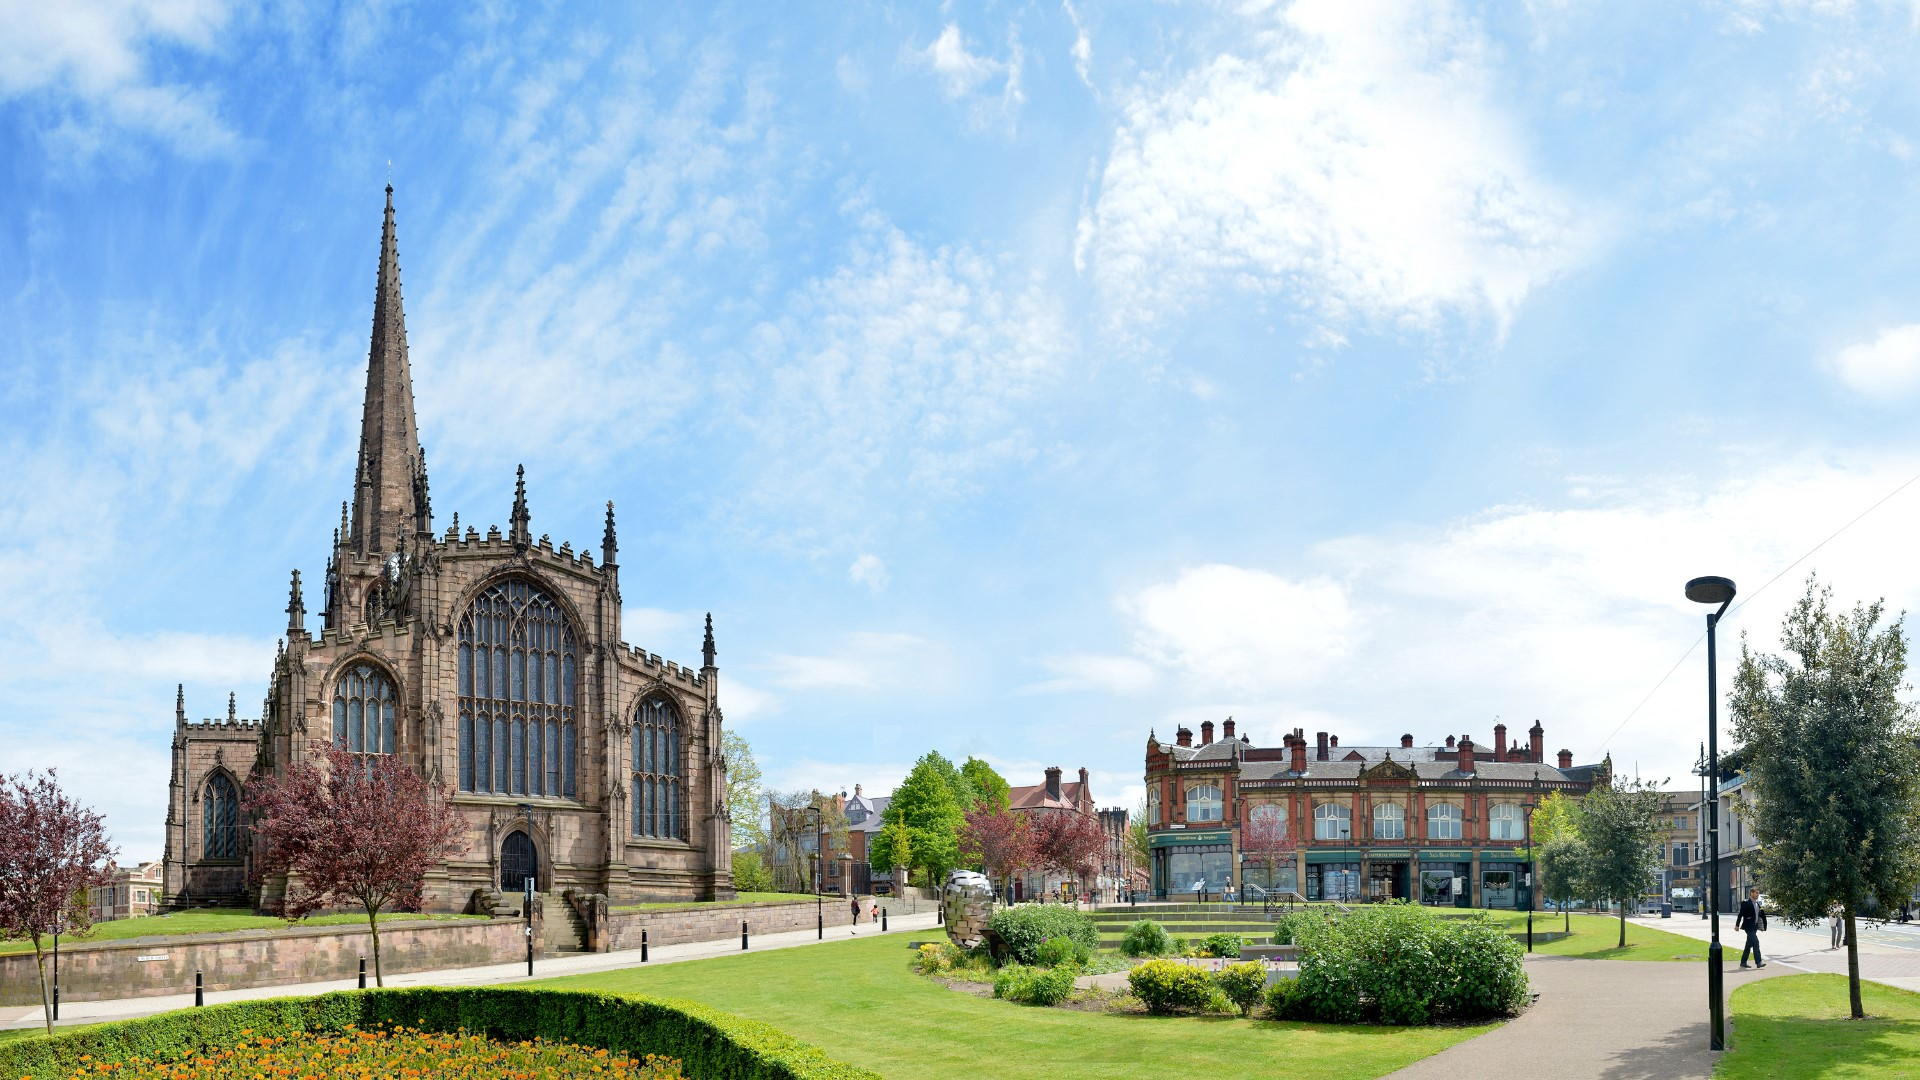 Panoramic view of Minster Gardens with Rotherham Minster, Imperial Buildings and Heart of Steel